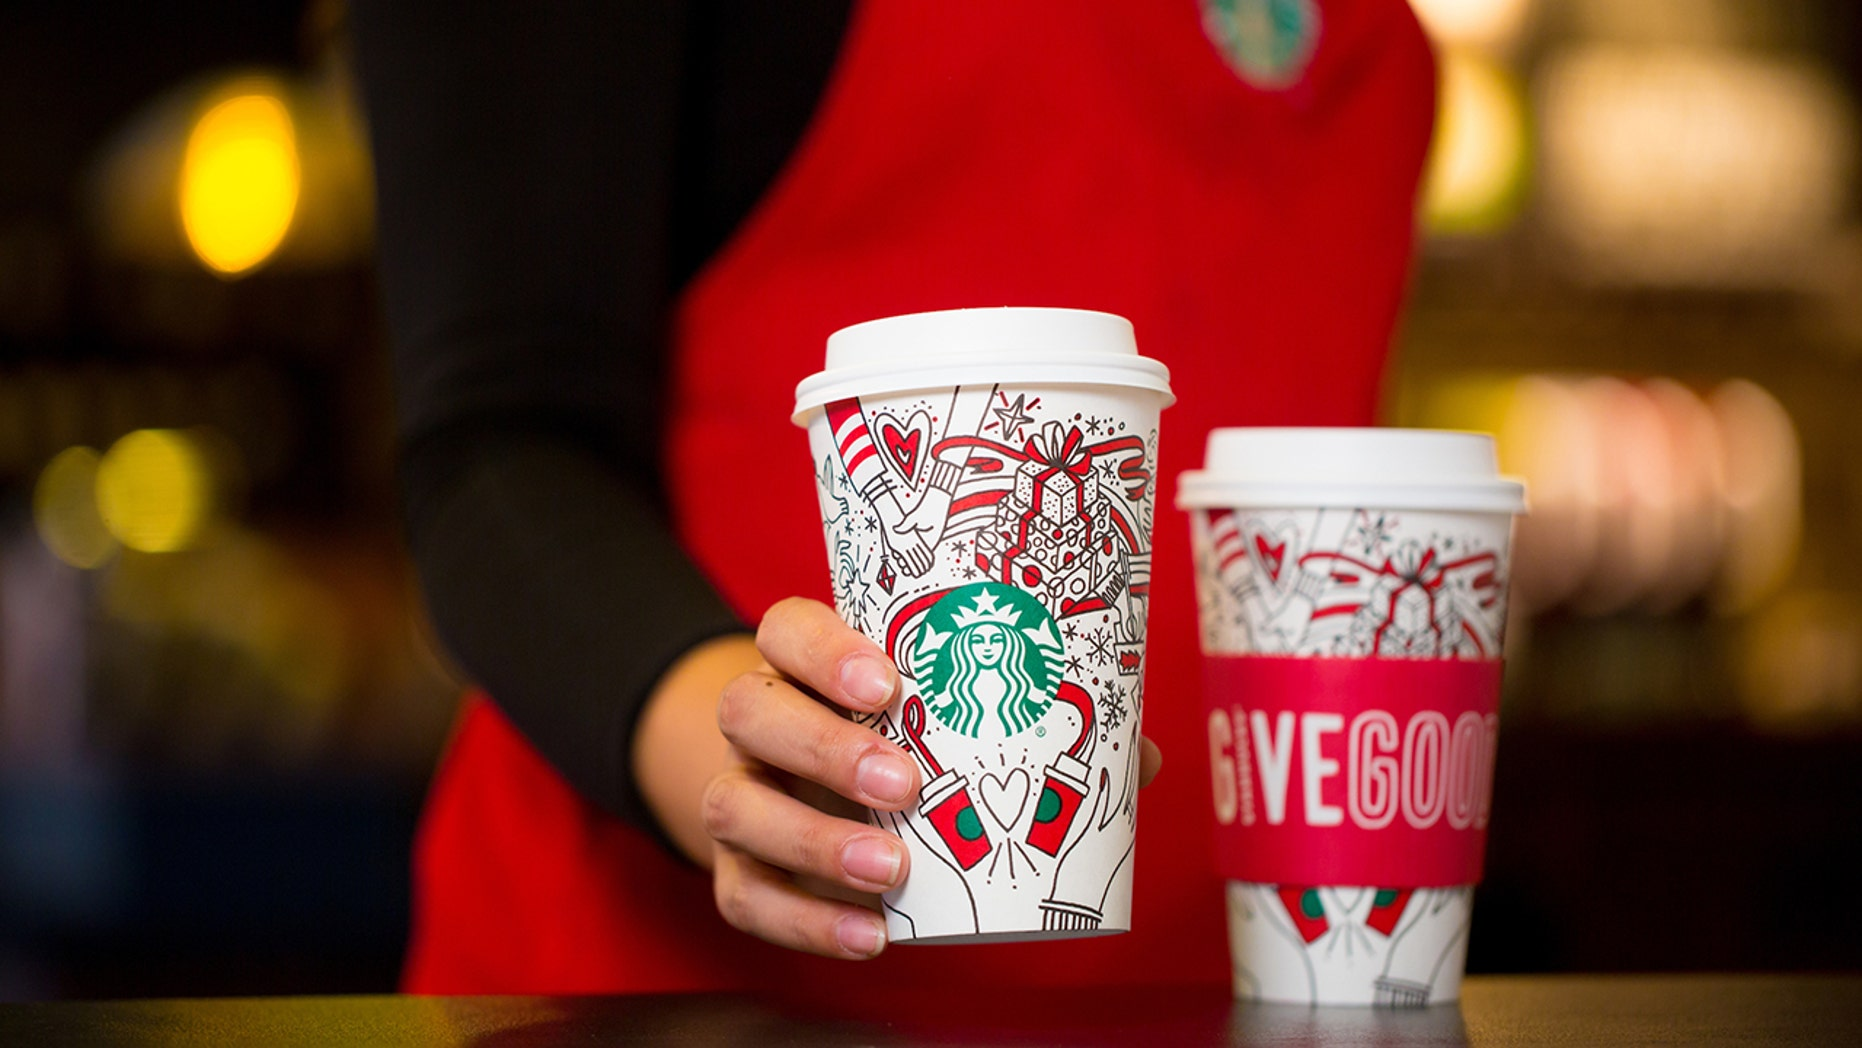 starbucks' new holiday cups feature festive doodles, christmas trees